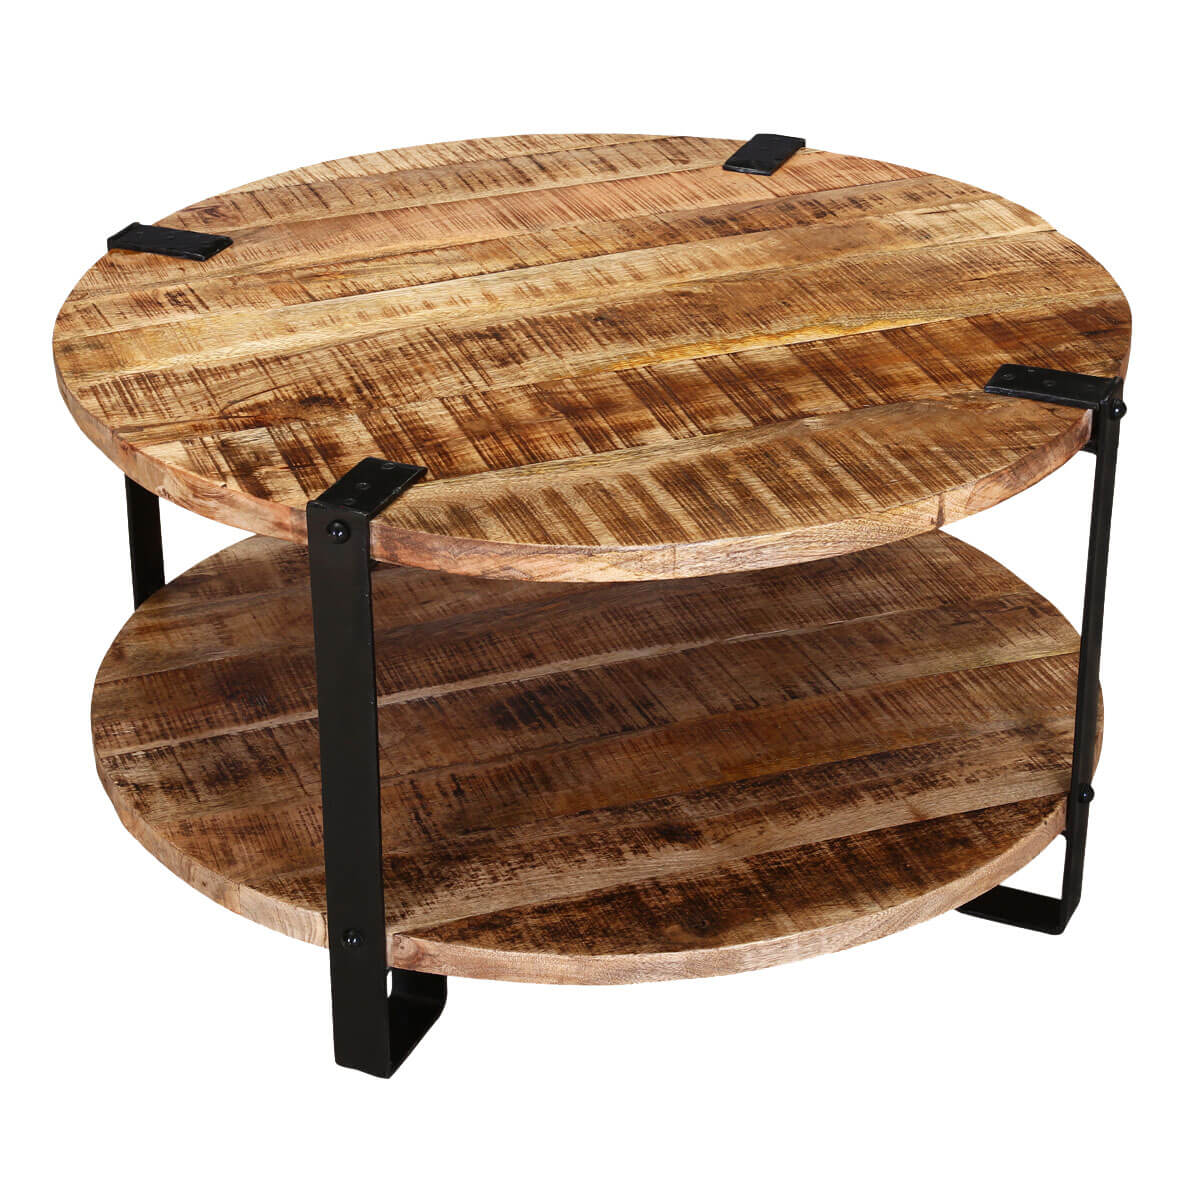 roxborough 35 rustic industrial round coffee table with saw marks. Black Bedroom Furniture Sets. Home Design Ideas